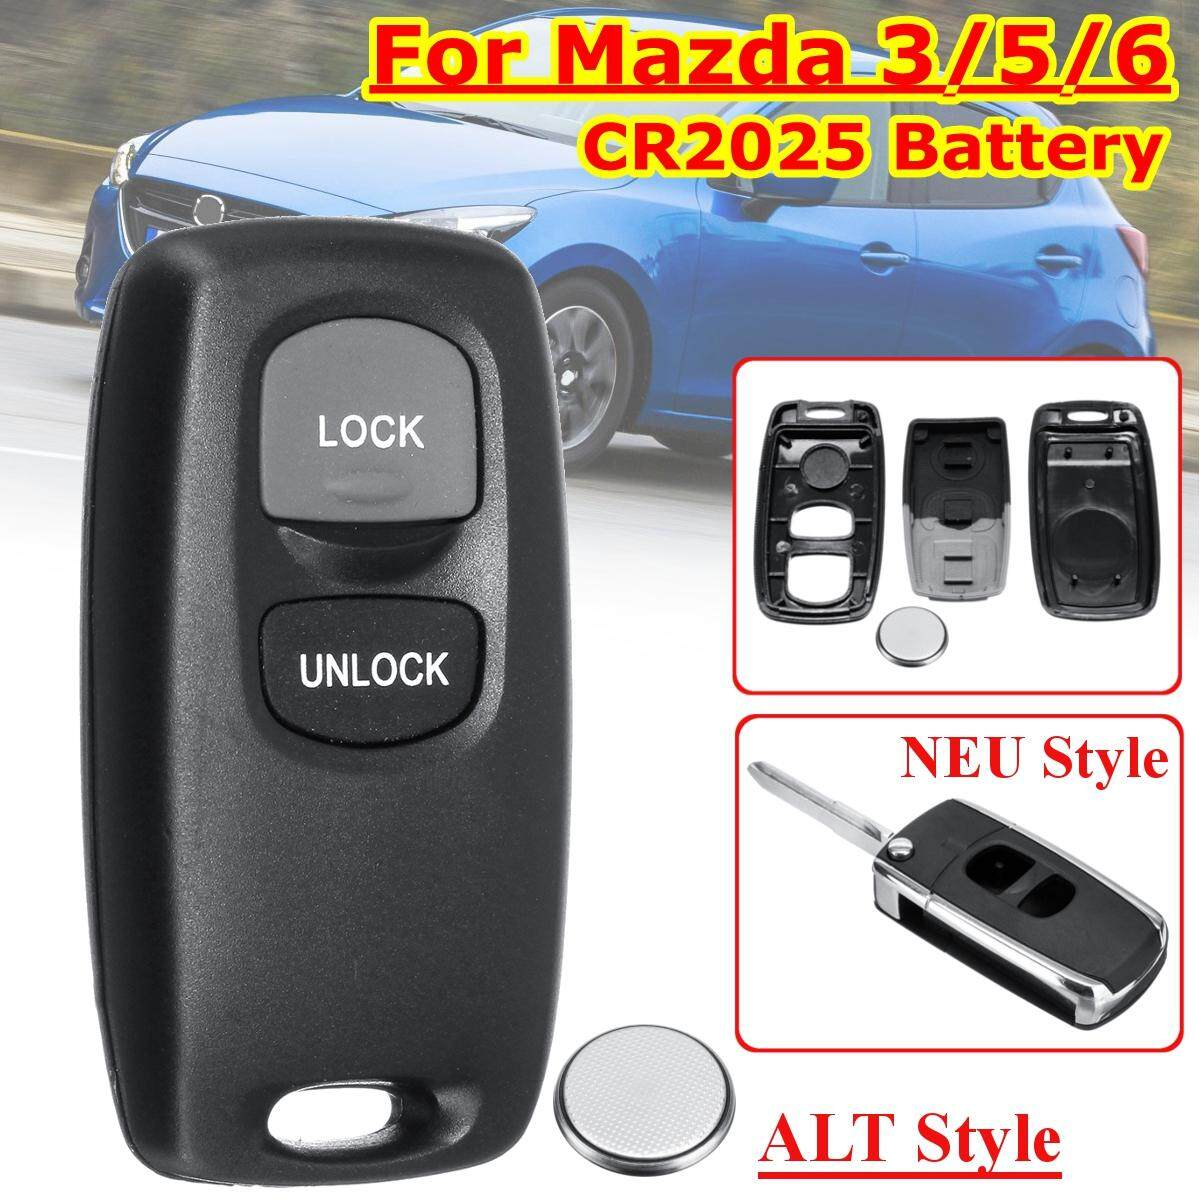 【Free Shipping + Flash Deal】2 Buttons Remote Key Shell Case CR2025 Bat-tery For Mazda 3/5/6